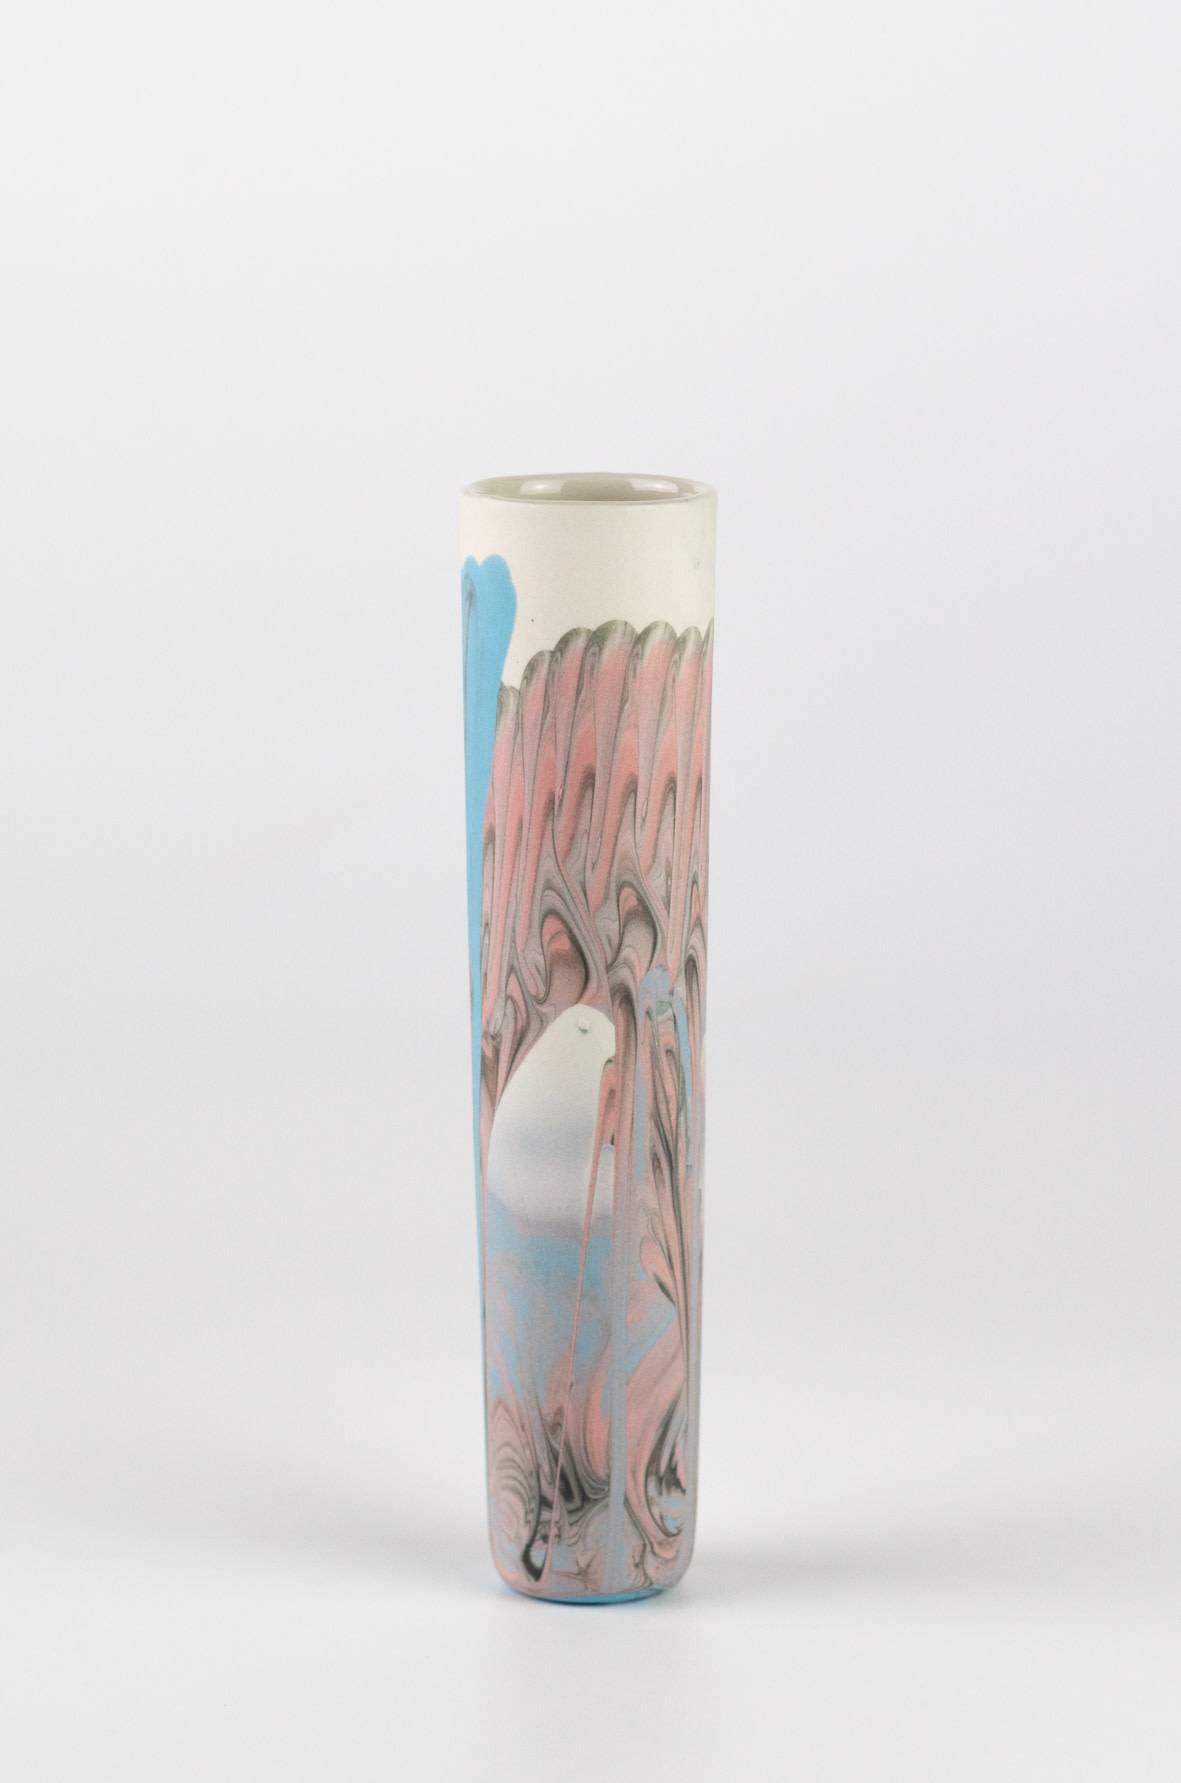 "<span class=""link fancybox-details-link""><a href=""/artists/219-james-pegg/works/6577-james-pegg-boubouki-budvase-2019/"">View Detail Page</a></span><div class=""artist""><strong>James Pegg</strong></div> <div class=""title""><em>Boubouki Budvase</em>, 2019</div> <div class=""medium"">action-cast stained porcelain with glazed interior</div><div class=""price"">£42.00</div>"